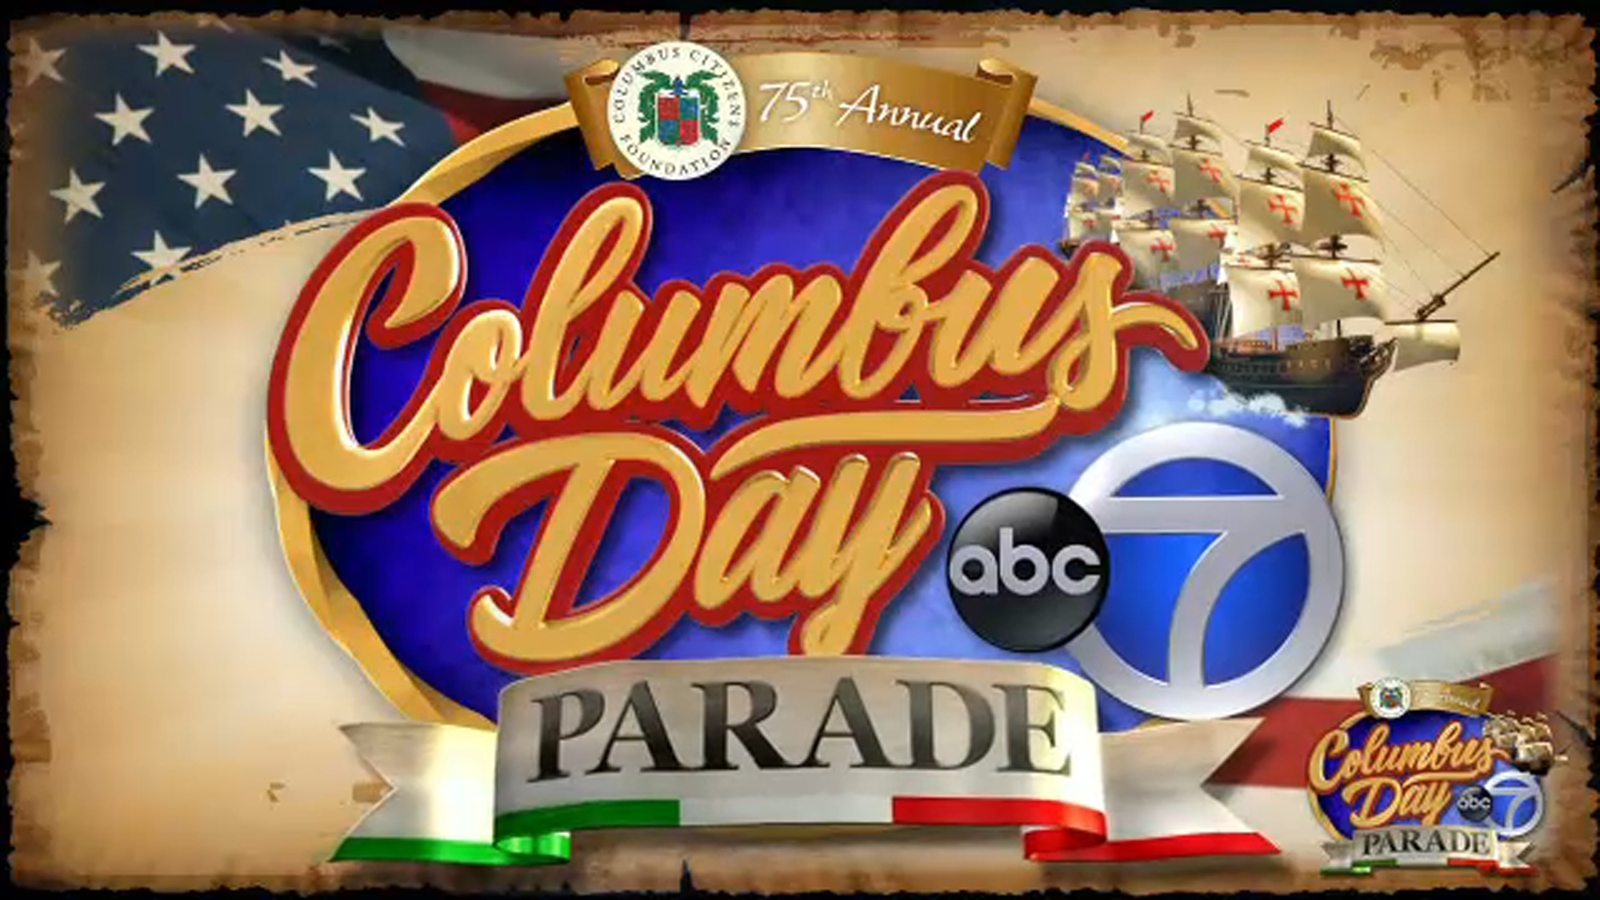 2019 Columbus Day Parade Nearly 1 million turn out for annual 1600x900